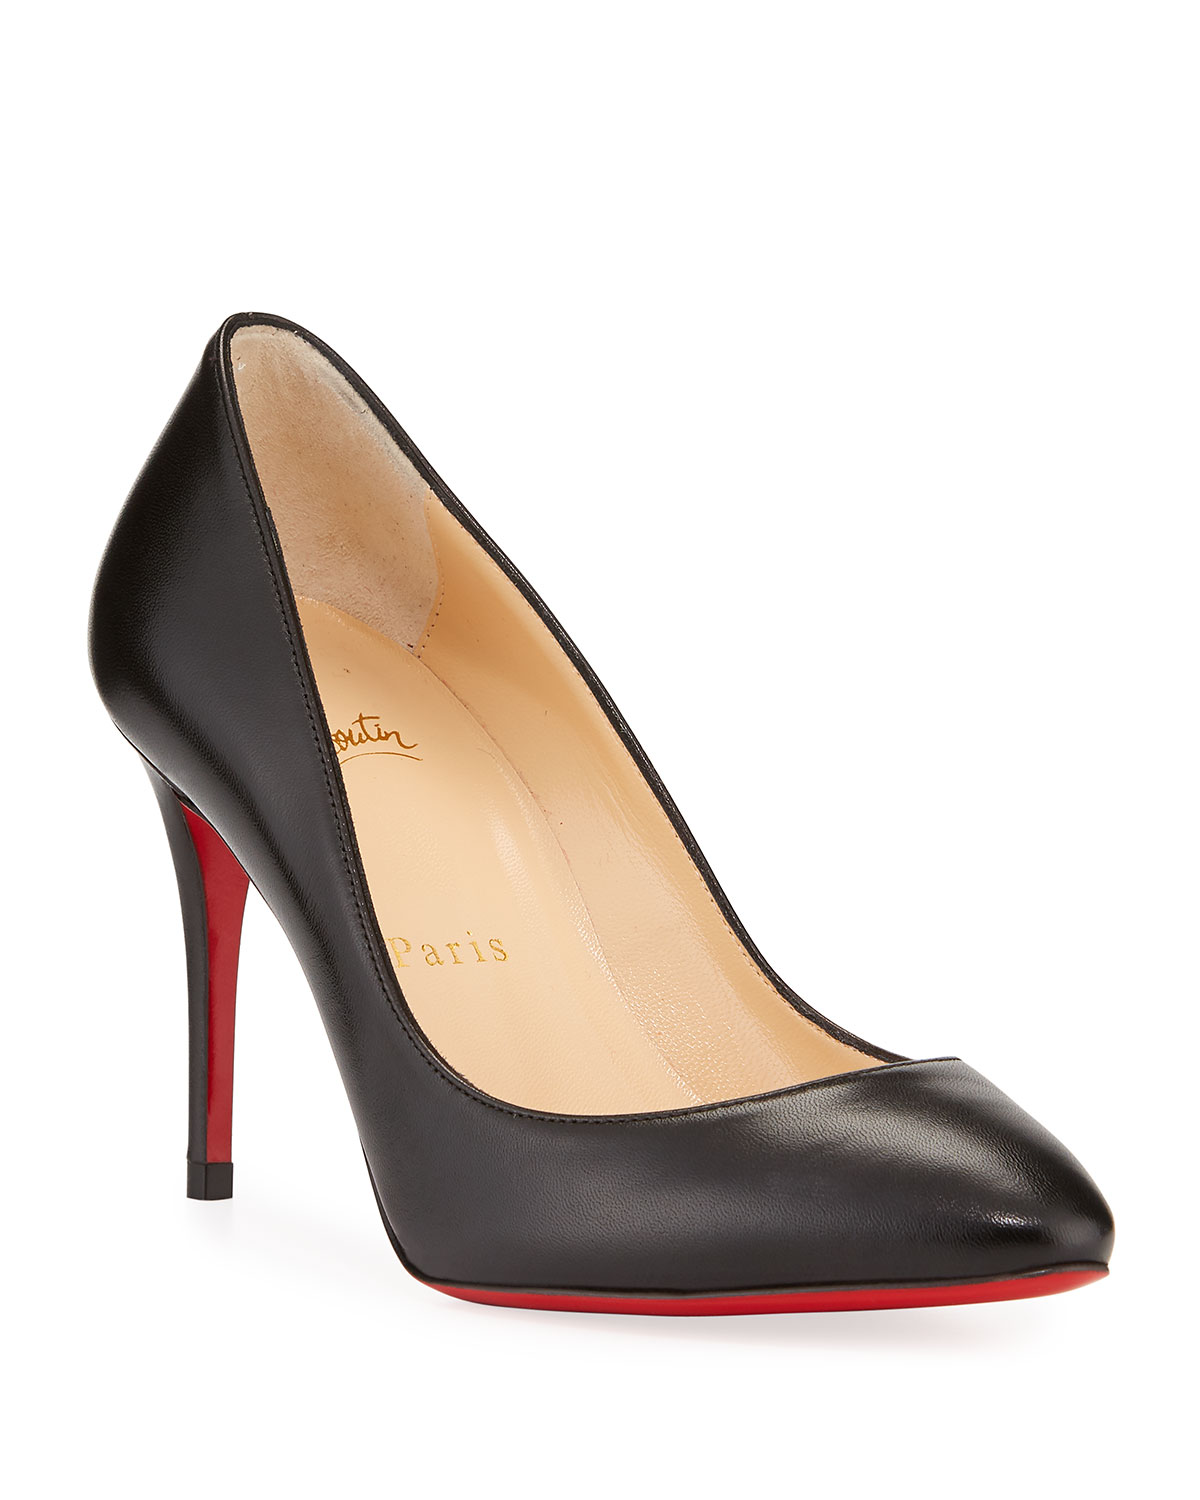 9f7c61a1e248 Christian Louboutin Eloise 85mm Napa Leather Red Sole Pumps